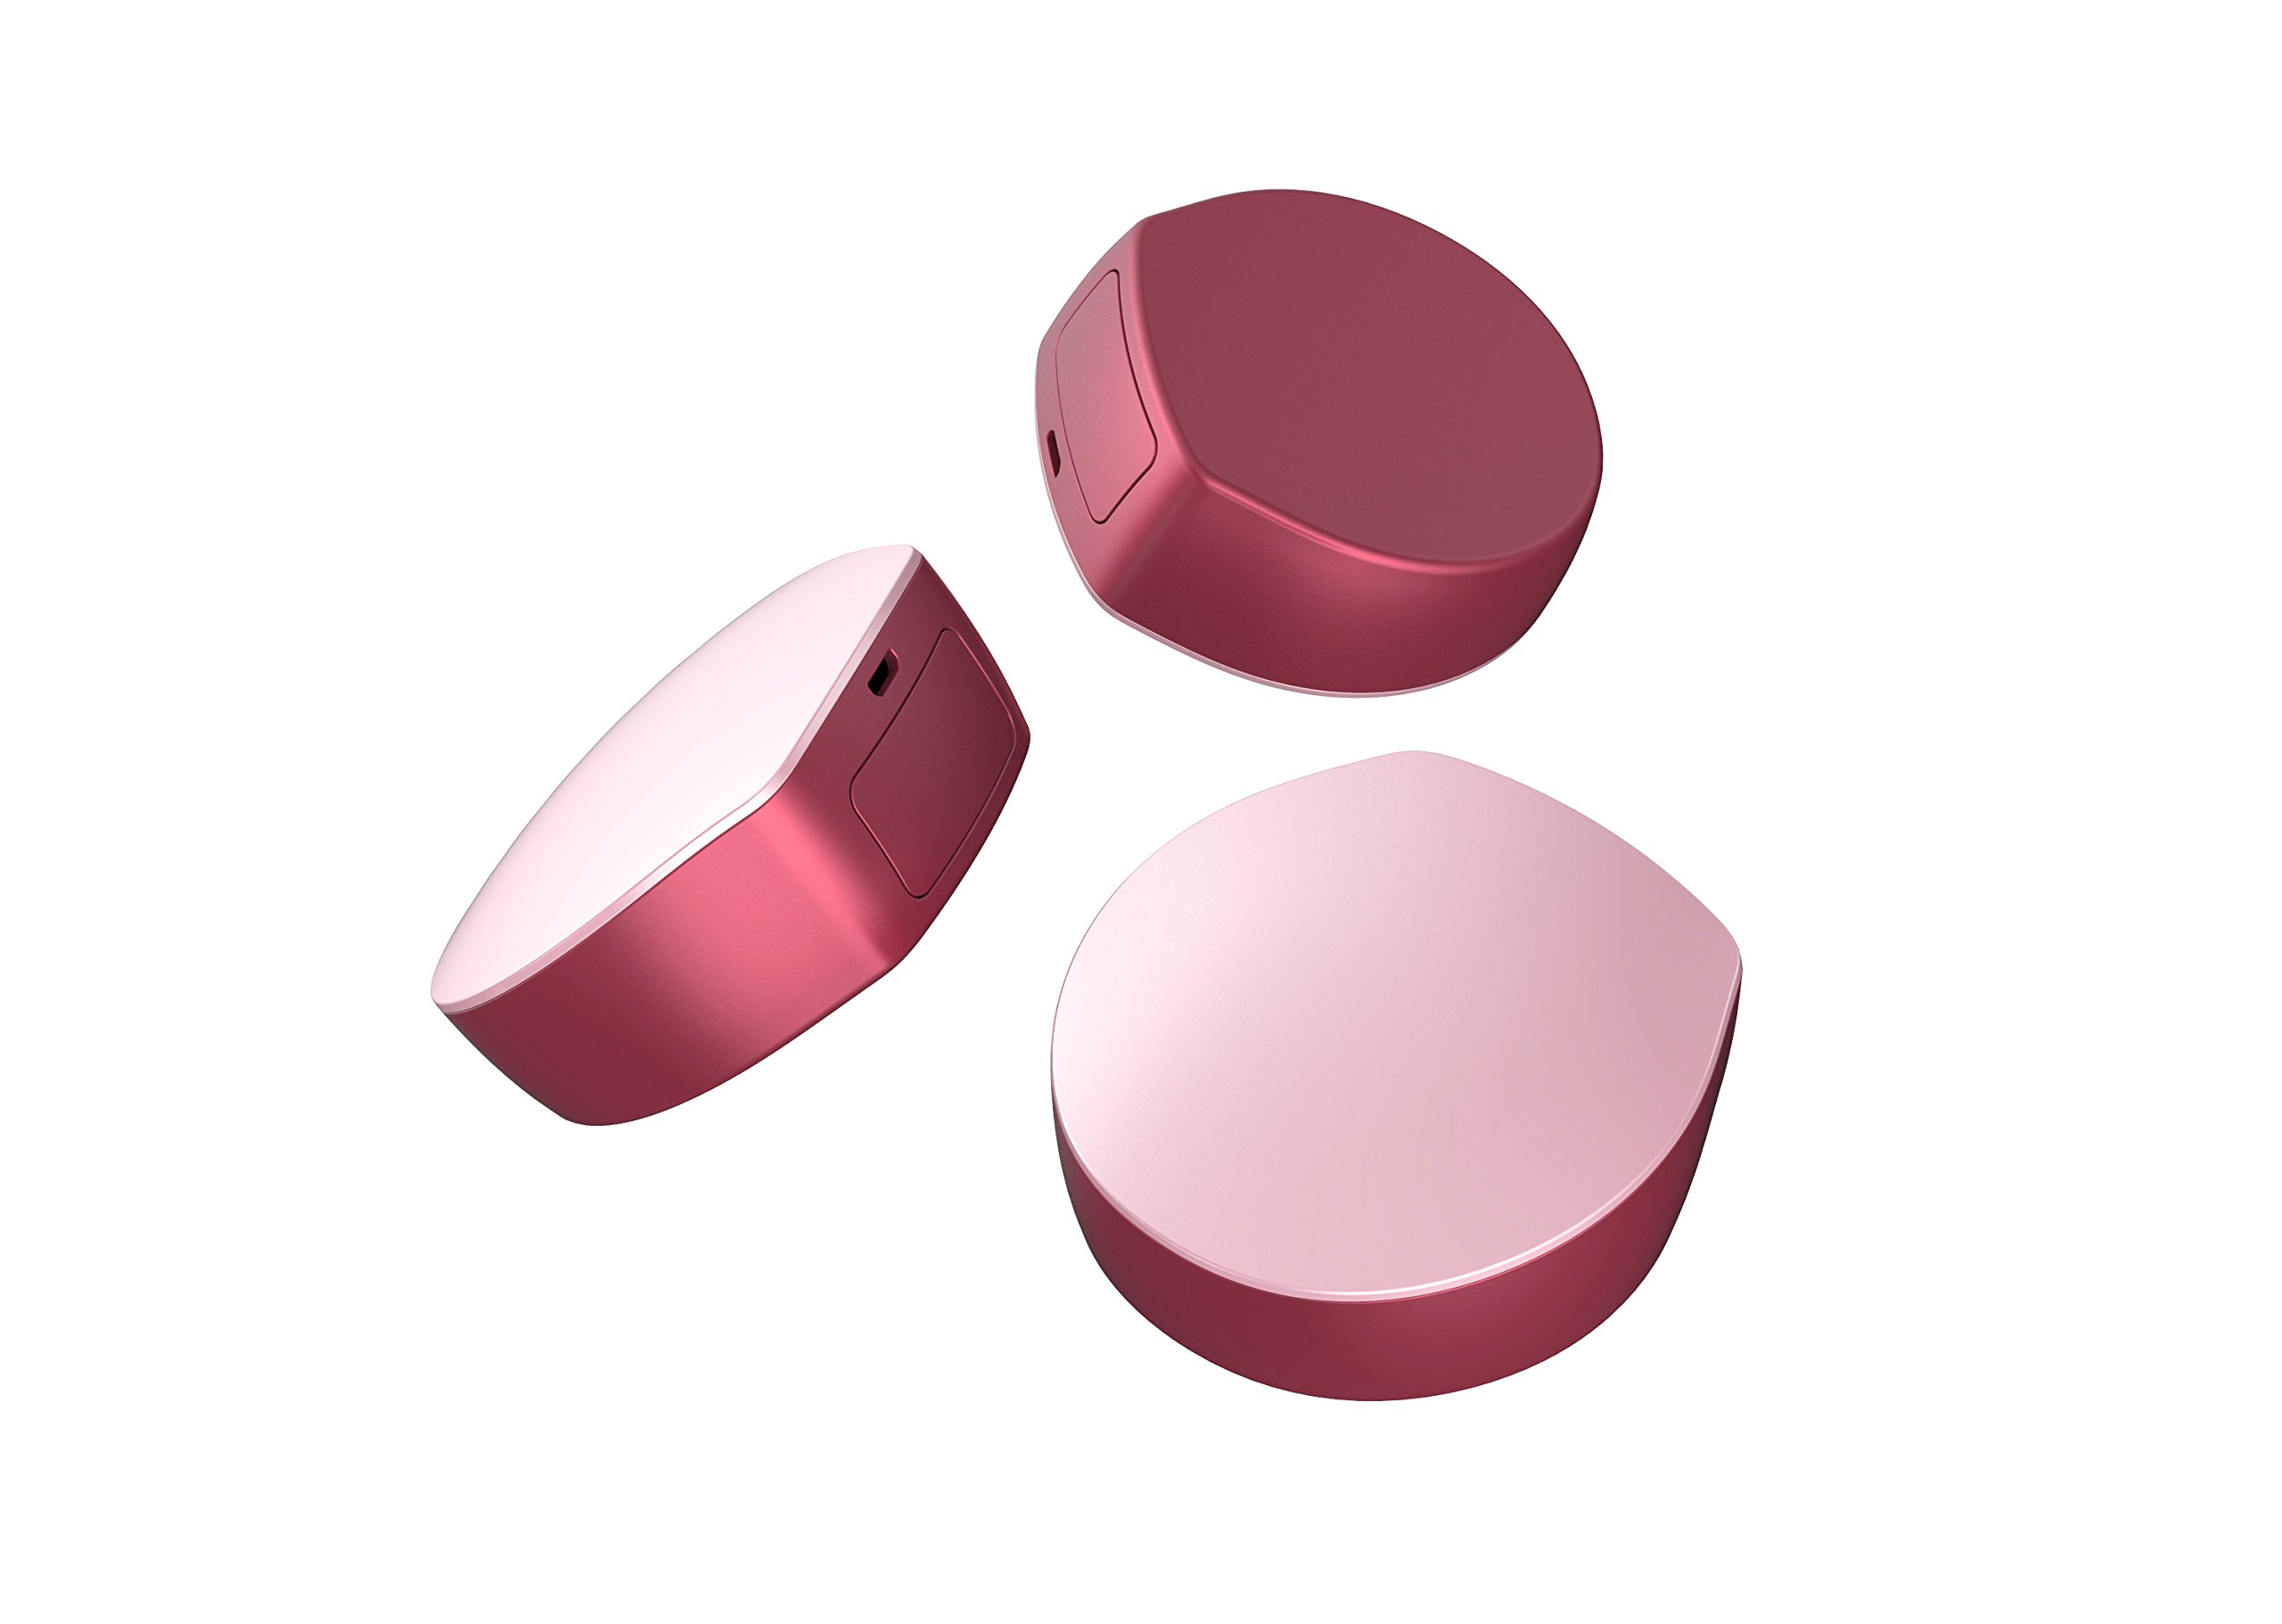 Quantum Egg Q Egg Contact Lens Disinfection Storage Case One Touch UV-C Light Triple Protection Against Eye Infections (Pink)